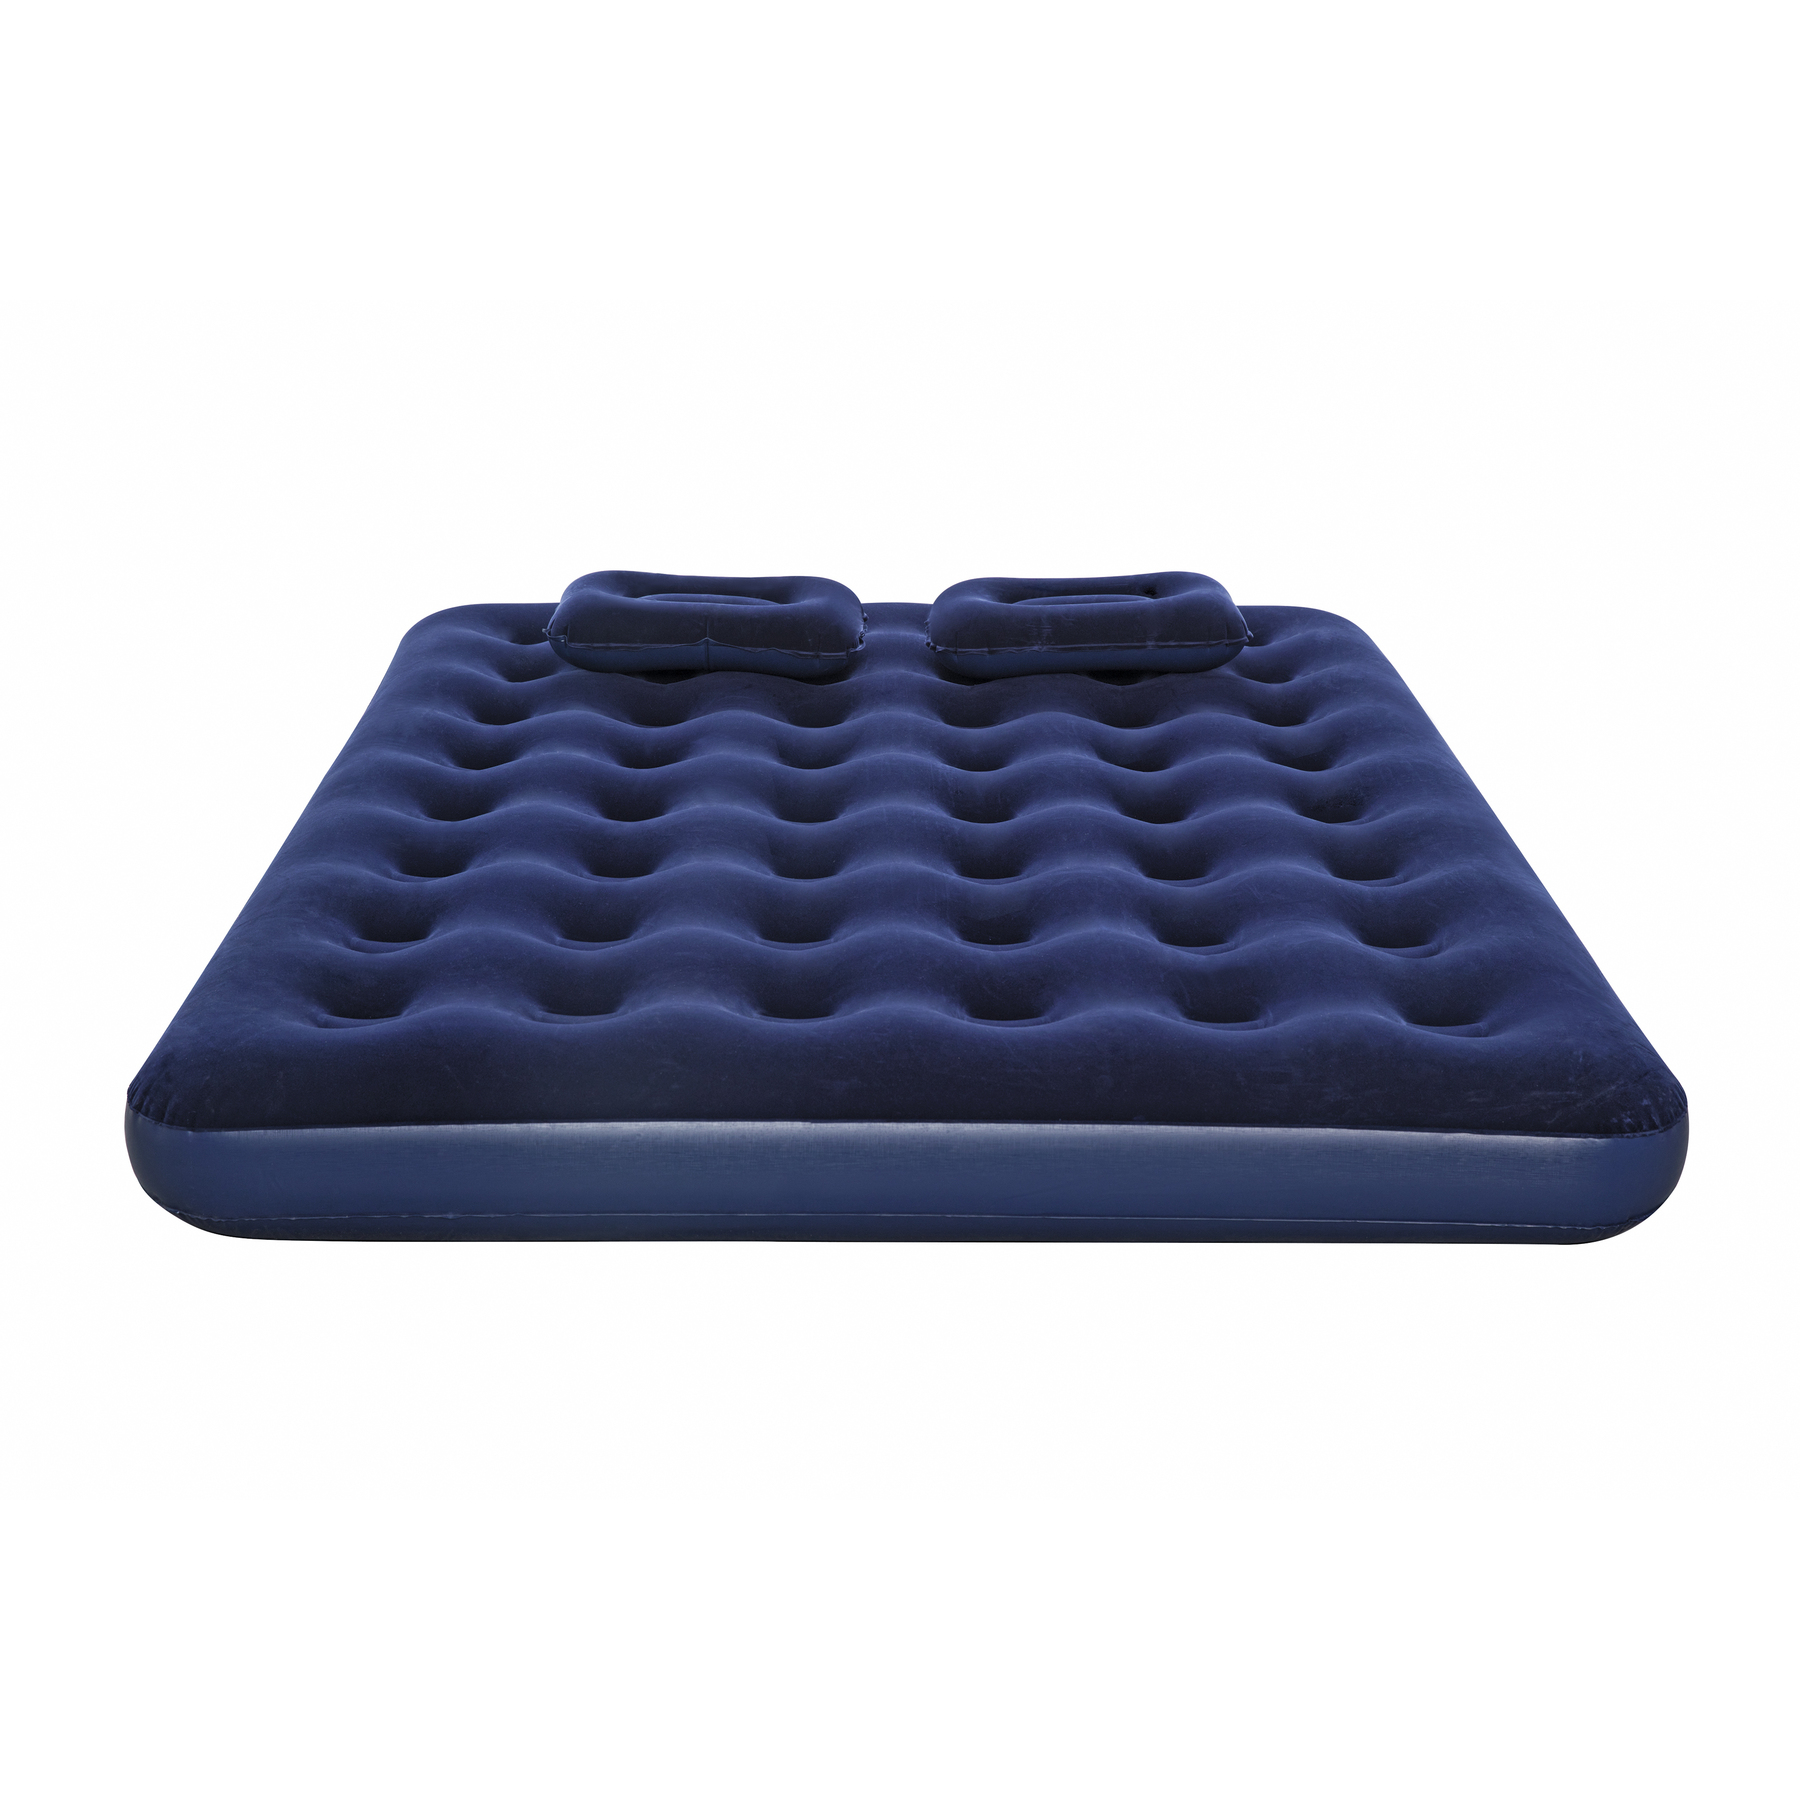 Mattress Inflatable флокированный 203 х152х22 Cm (hand Pump And 2 Pillow), Bestway Queen, Item No. 67374